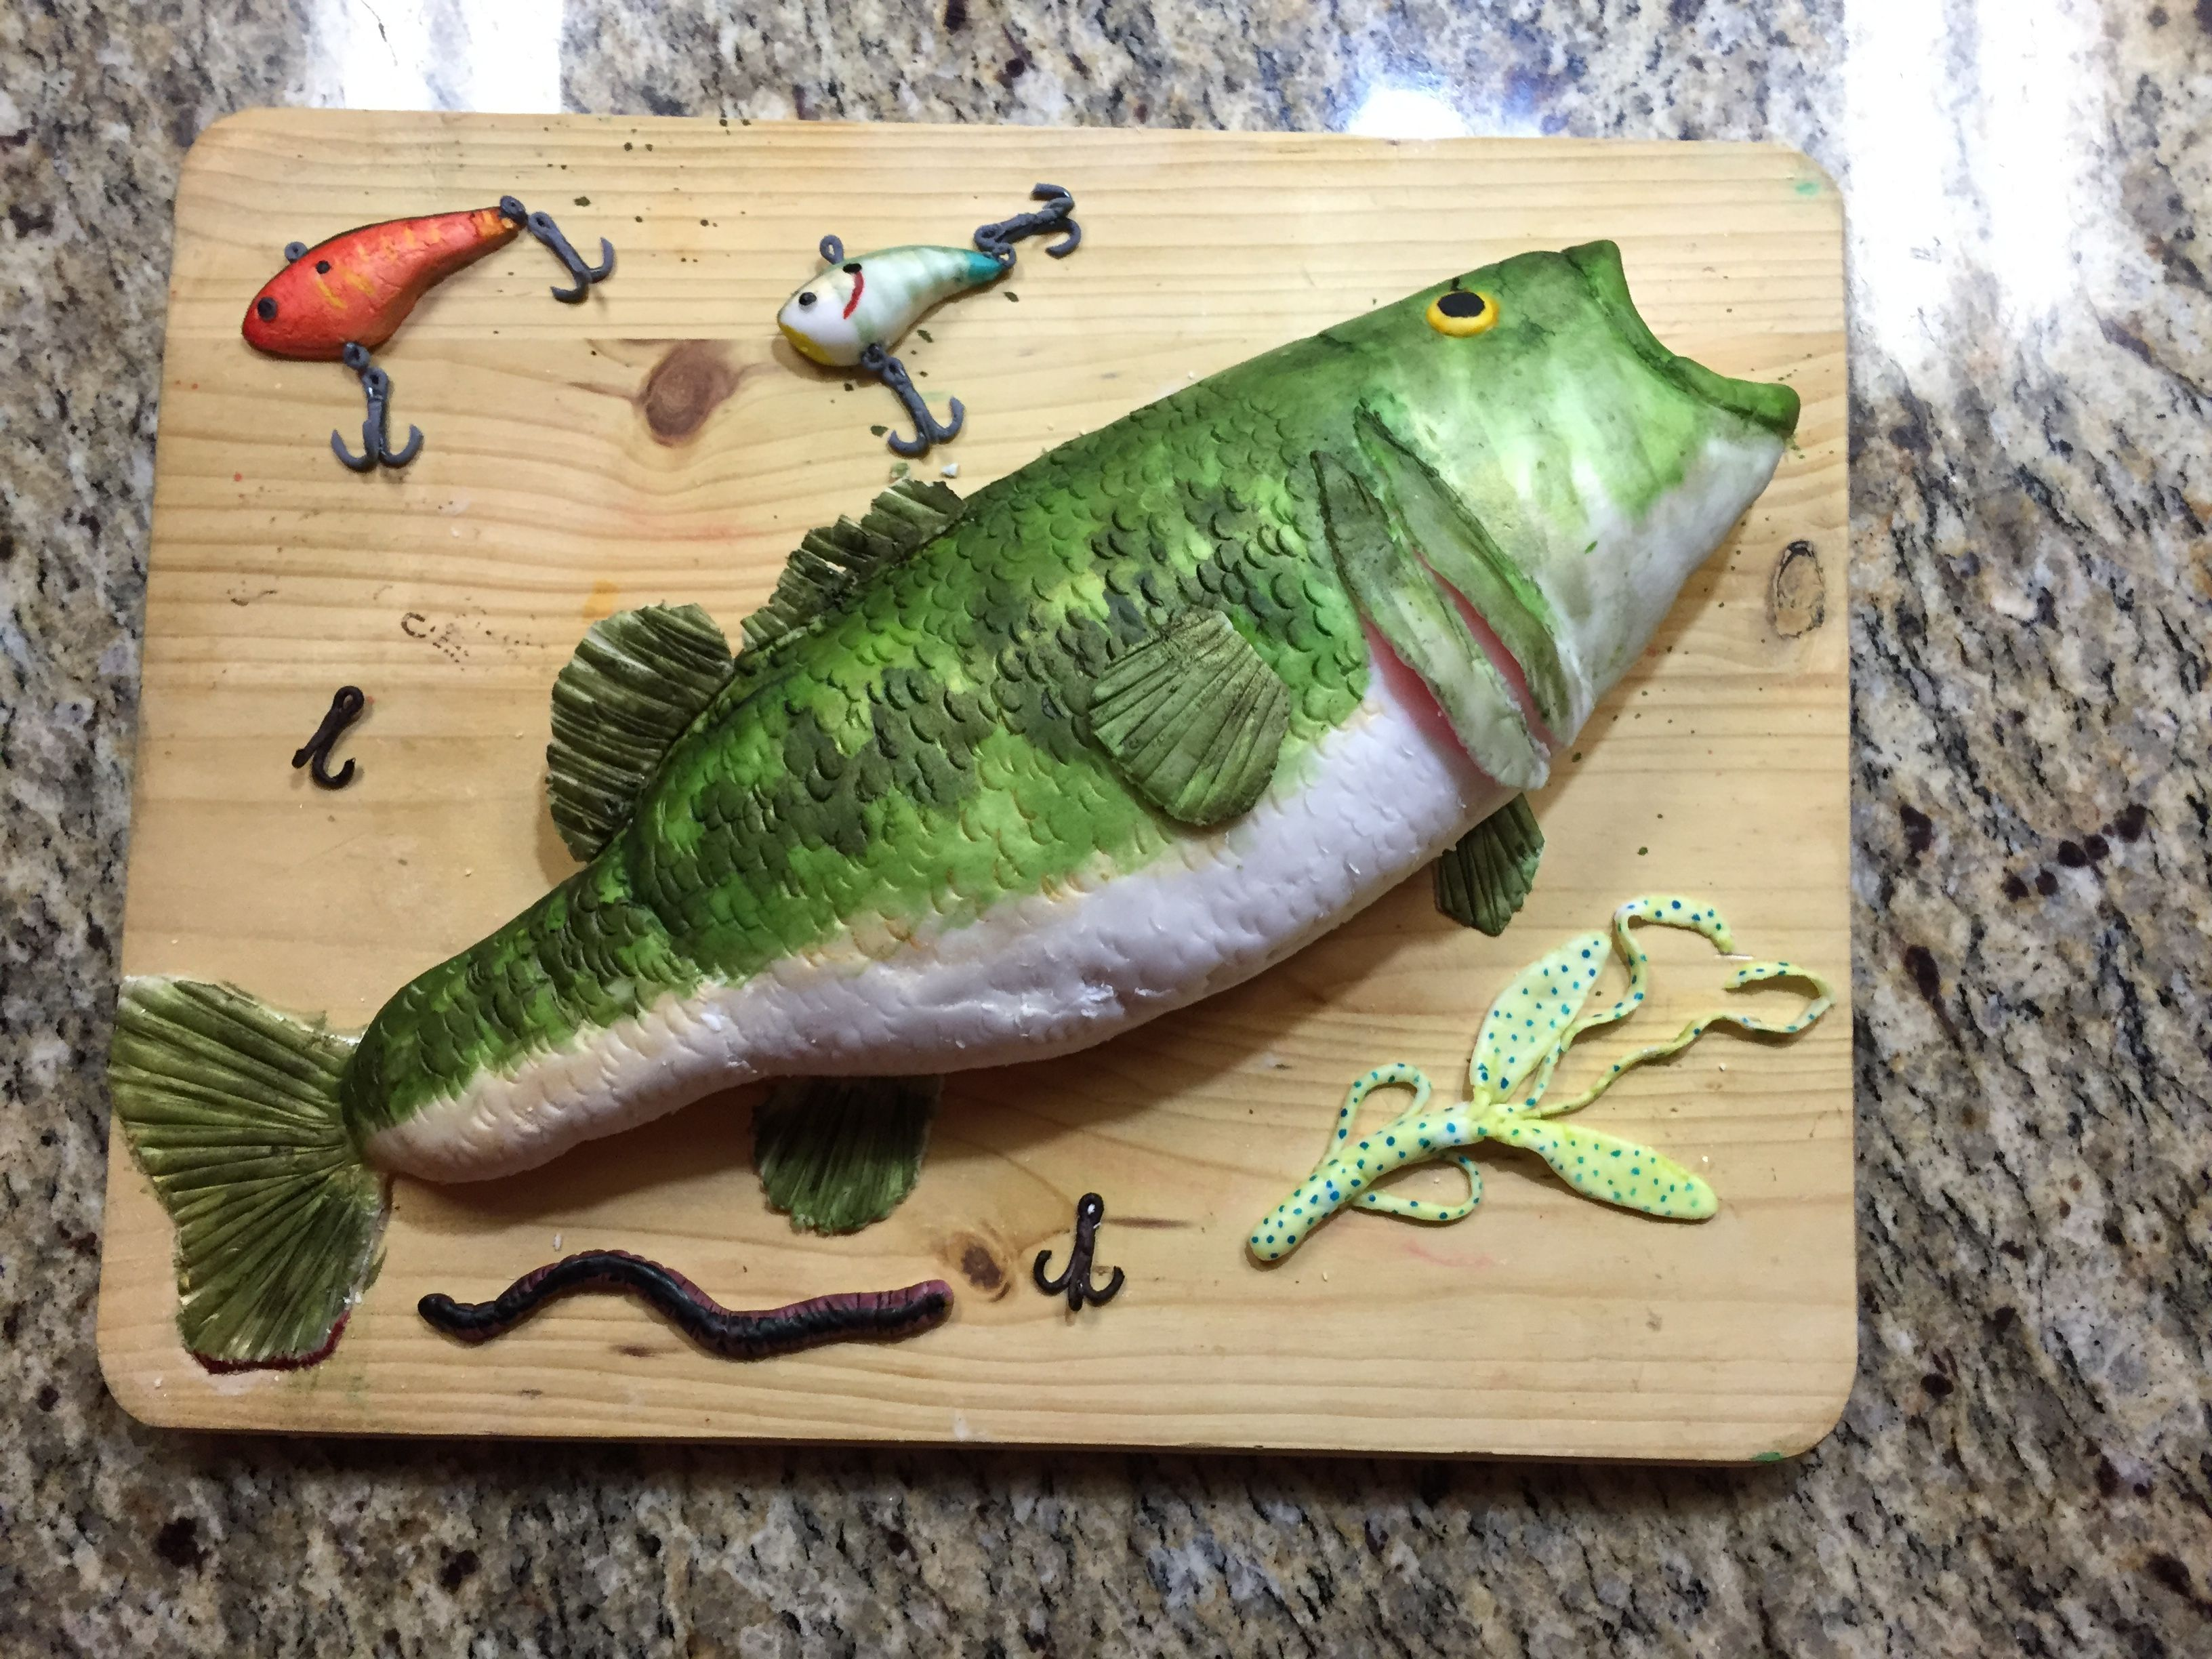 Bass Fish Cake Everything On Board Is Edible Including Lures And Hooks Cake Recipes Fish Cake Birthday Delicious Cake Recipes